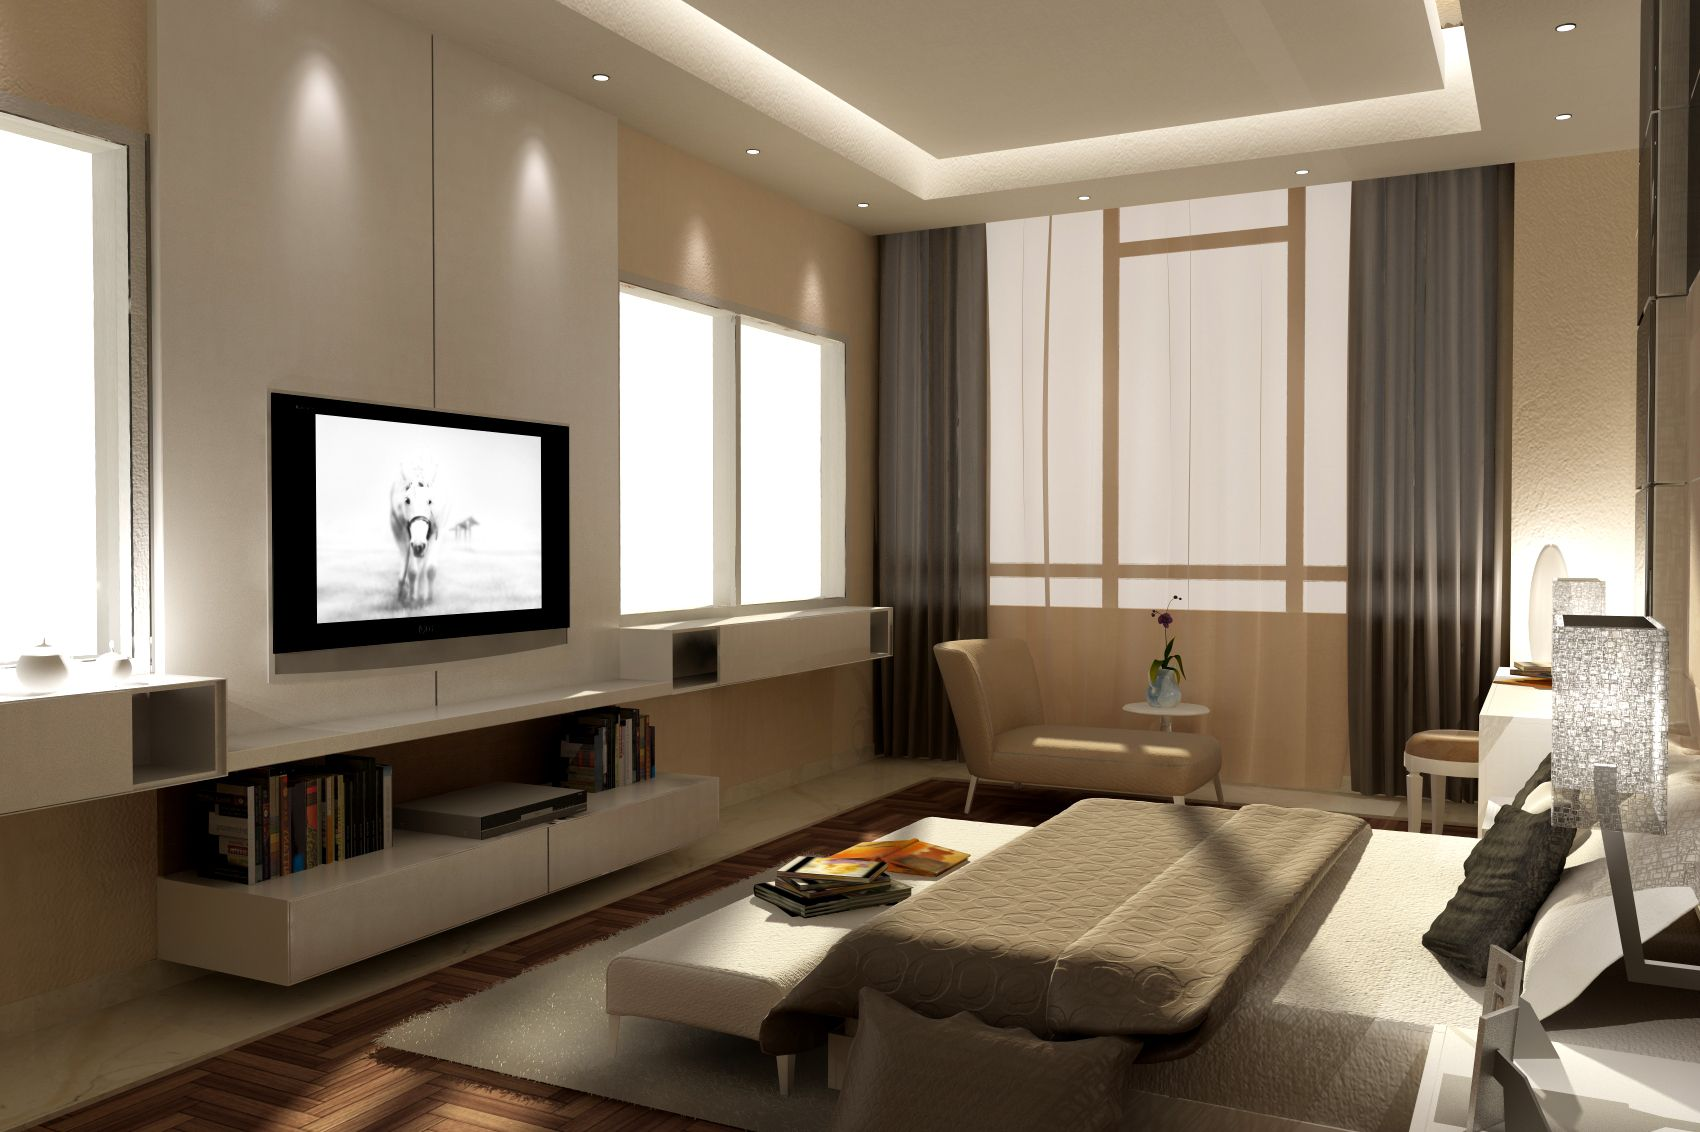 Bedroom modern bedroom interior design 3d max 3d for Modern interior design ideas